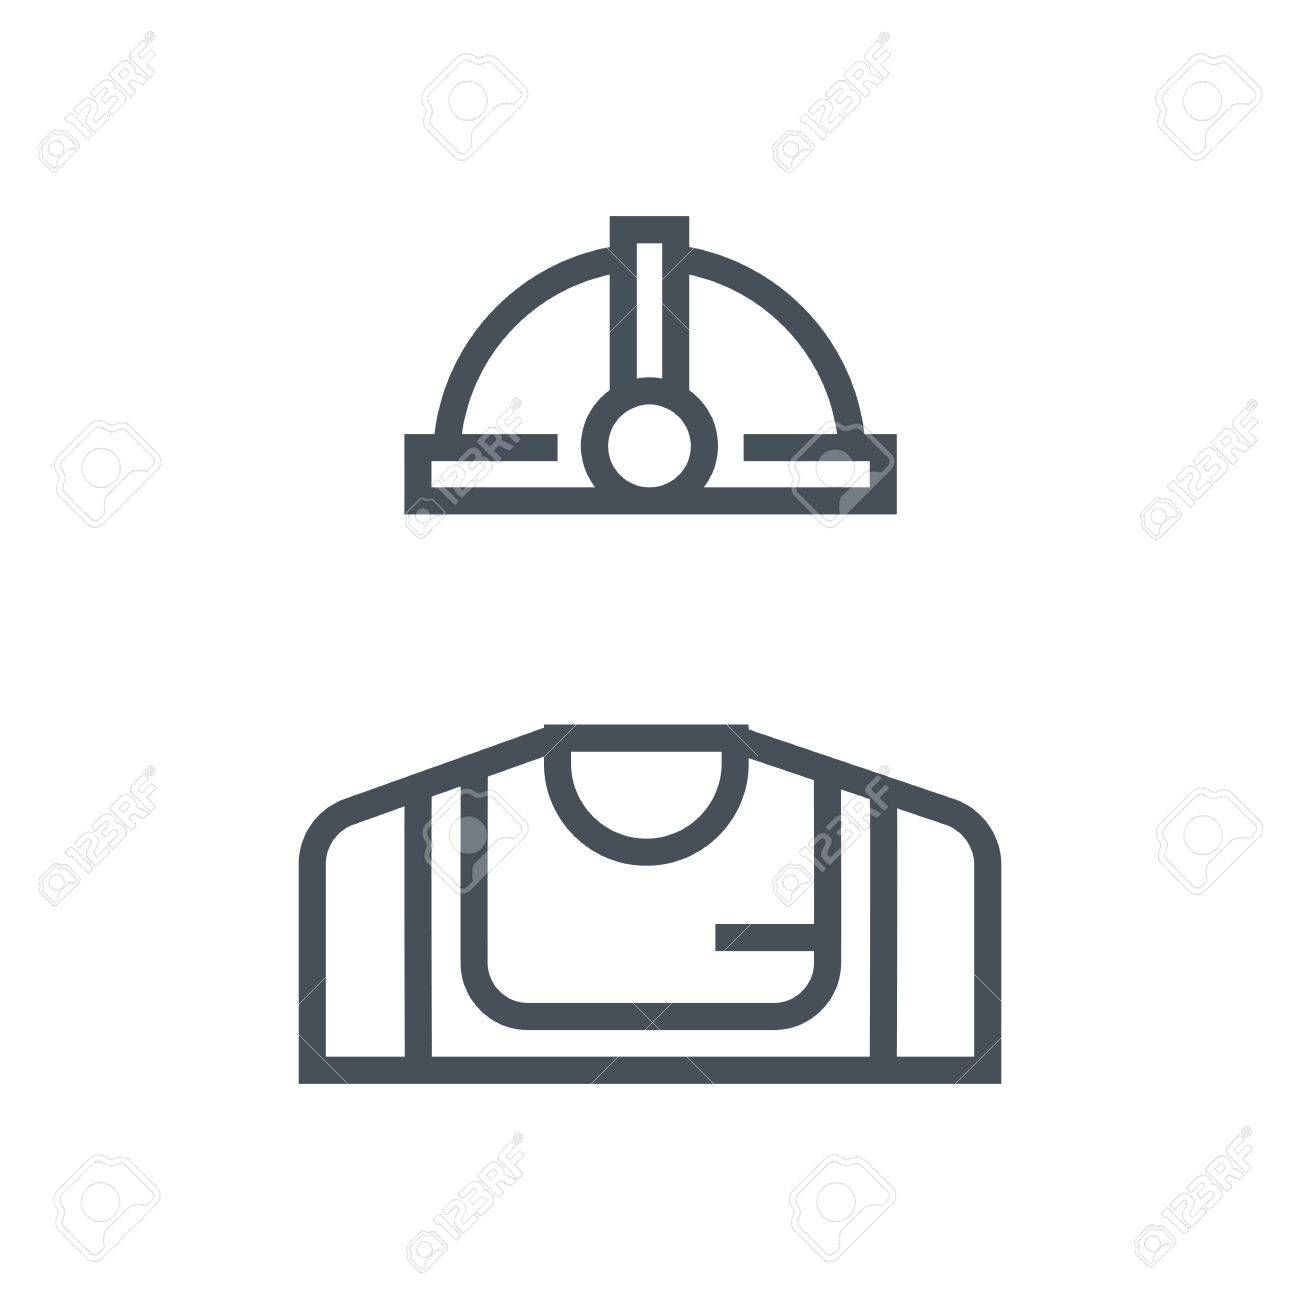 Industry worker icon suitable for info graphics, websites and print media and interfaces. Line vector icon. - 55945007